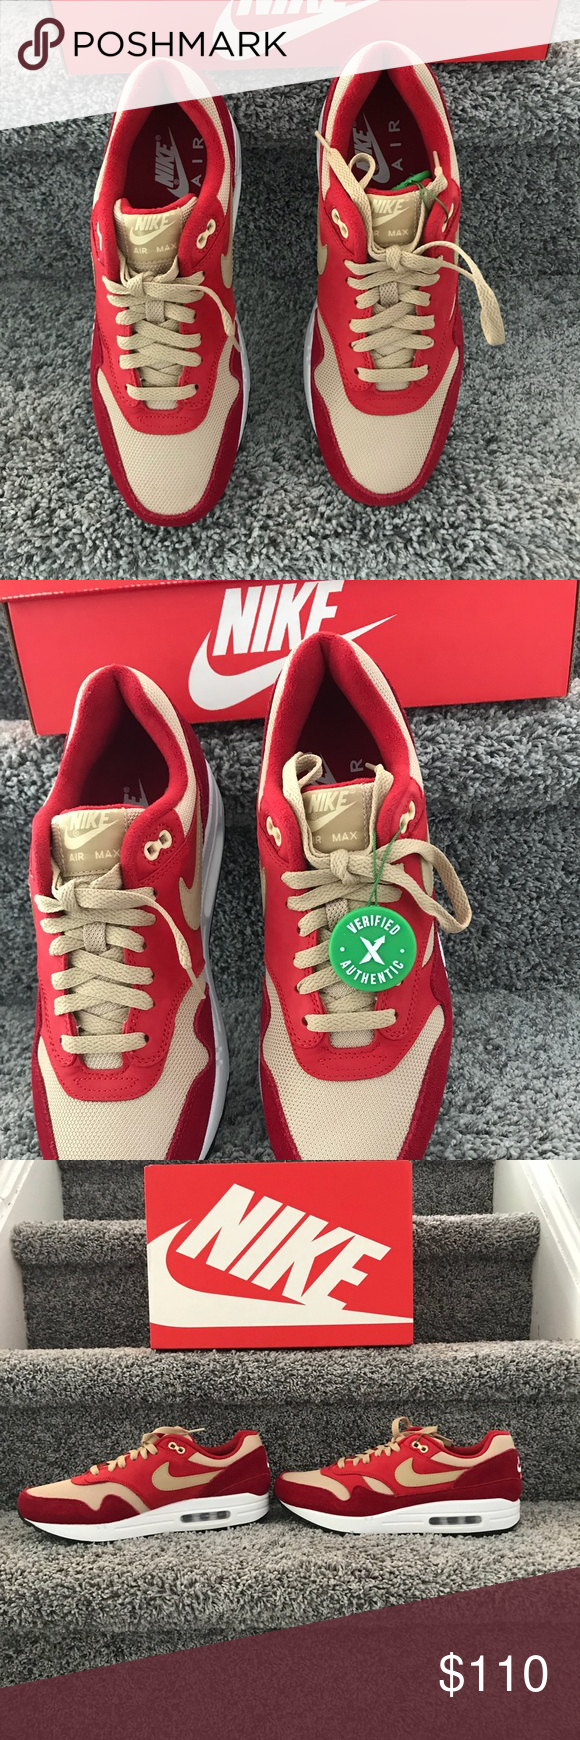 7c4ca1869e93 These are brand new, never before worn AIR Max 1 Red Curry Pack. These are  limited release and verified authentic by the Stock X shoe ...